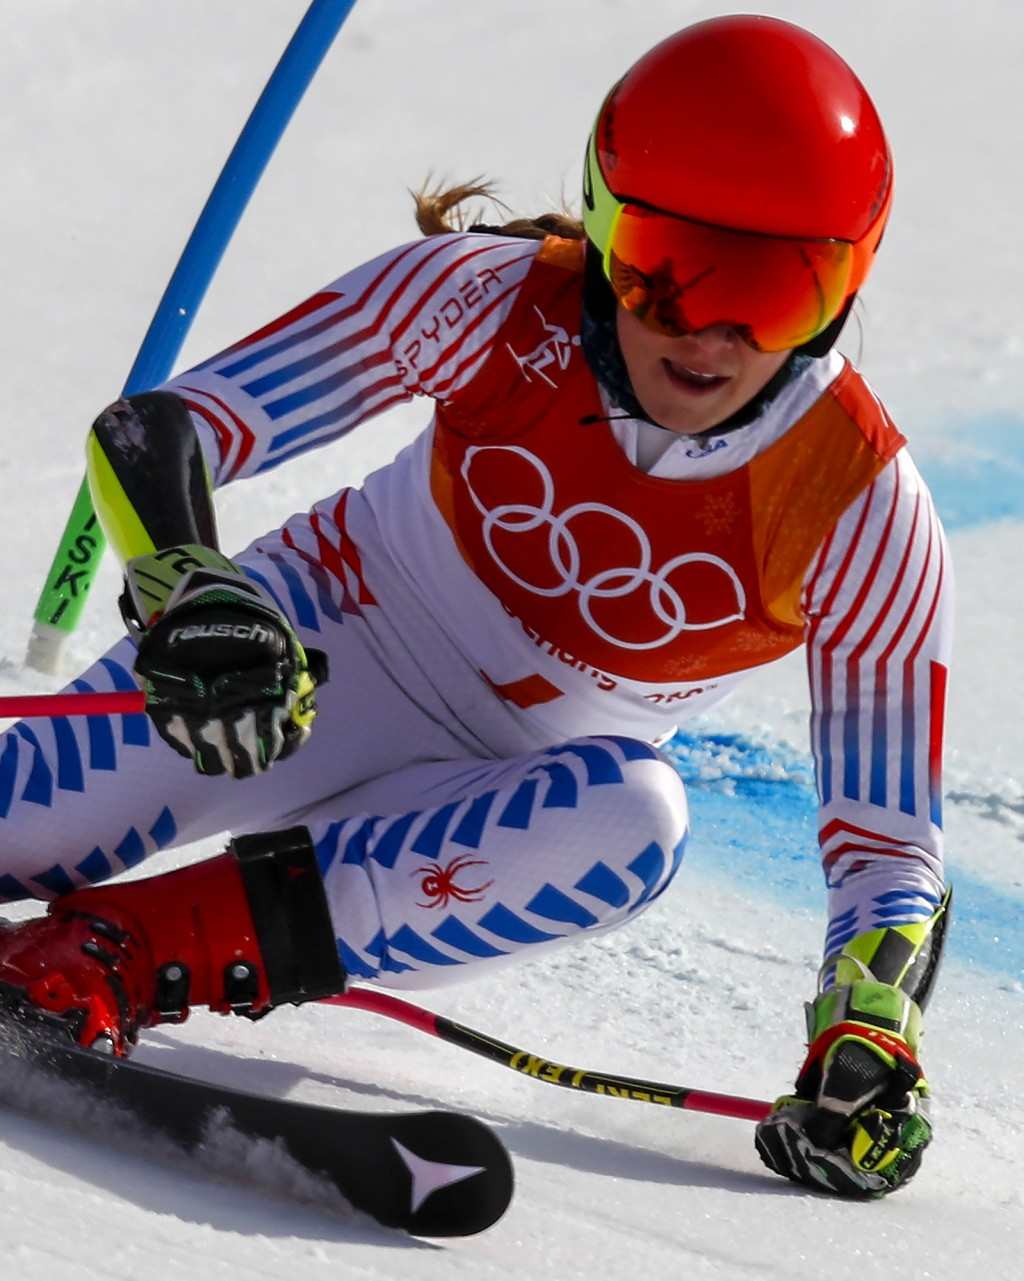 Mikaela Shiffrin, of the United States, skies to a gold medal during the second run of the Women's Giant Slalom at the 2018 Winter Olympics in Pyeongc